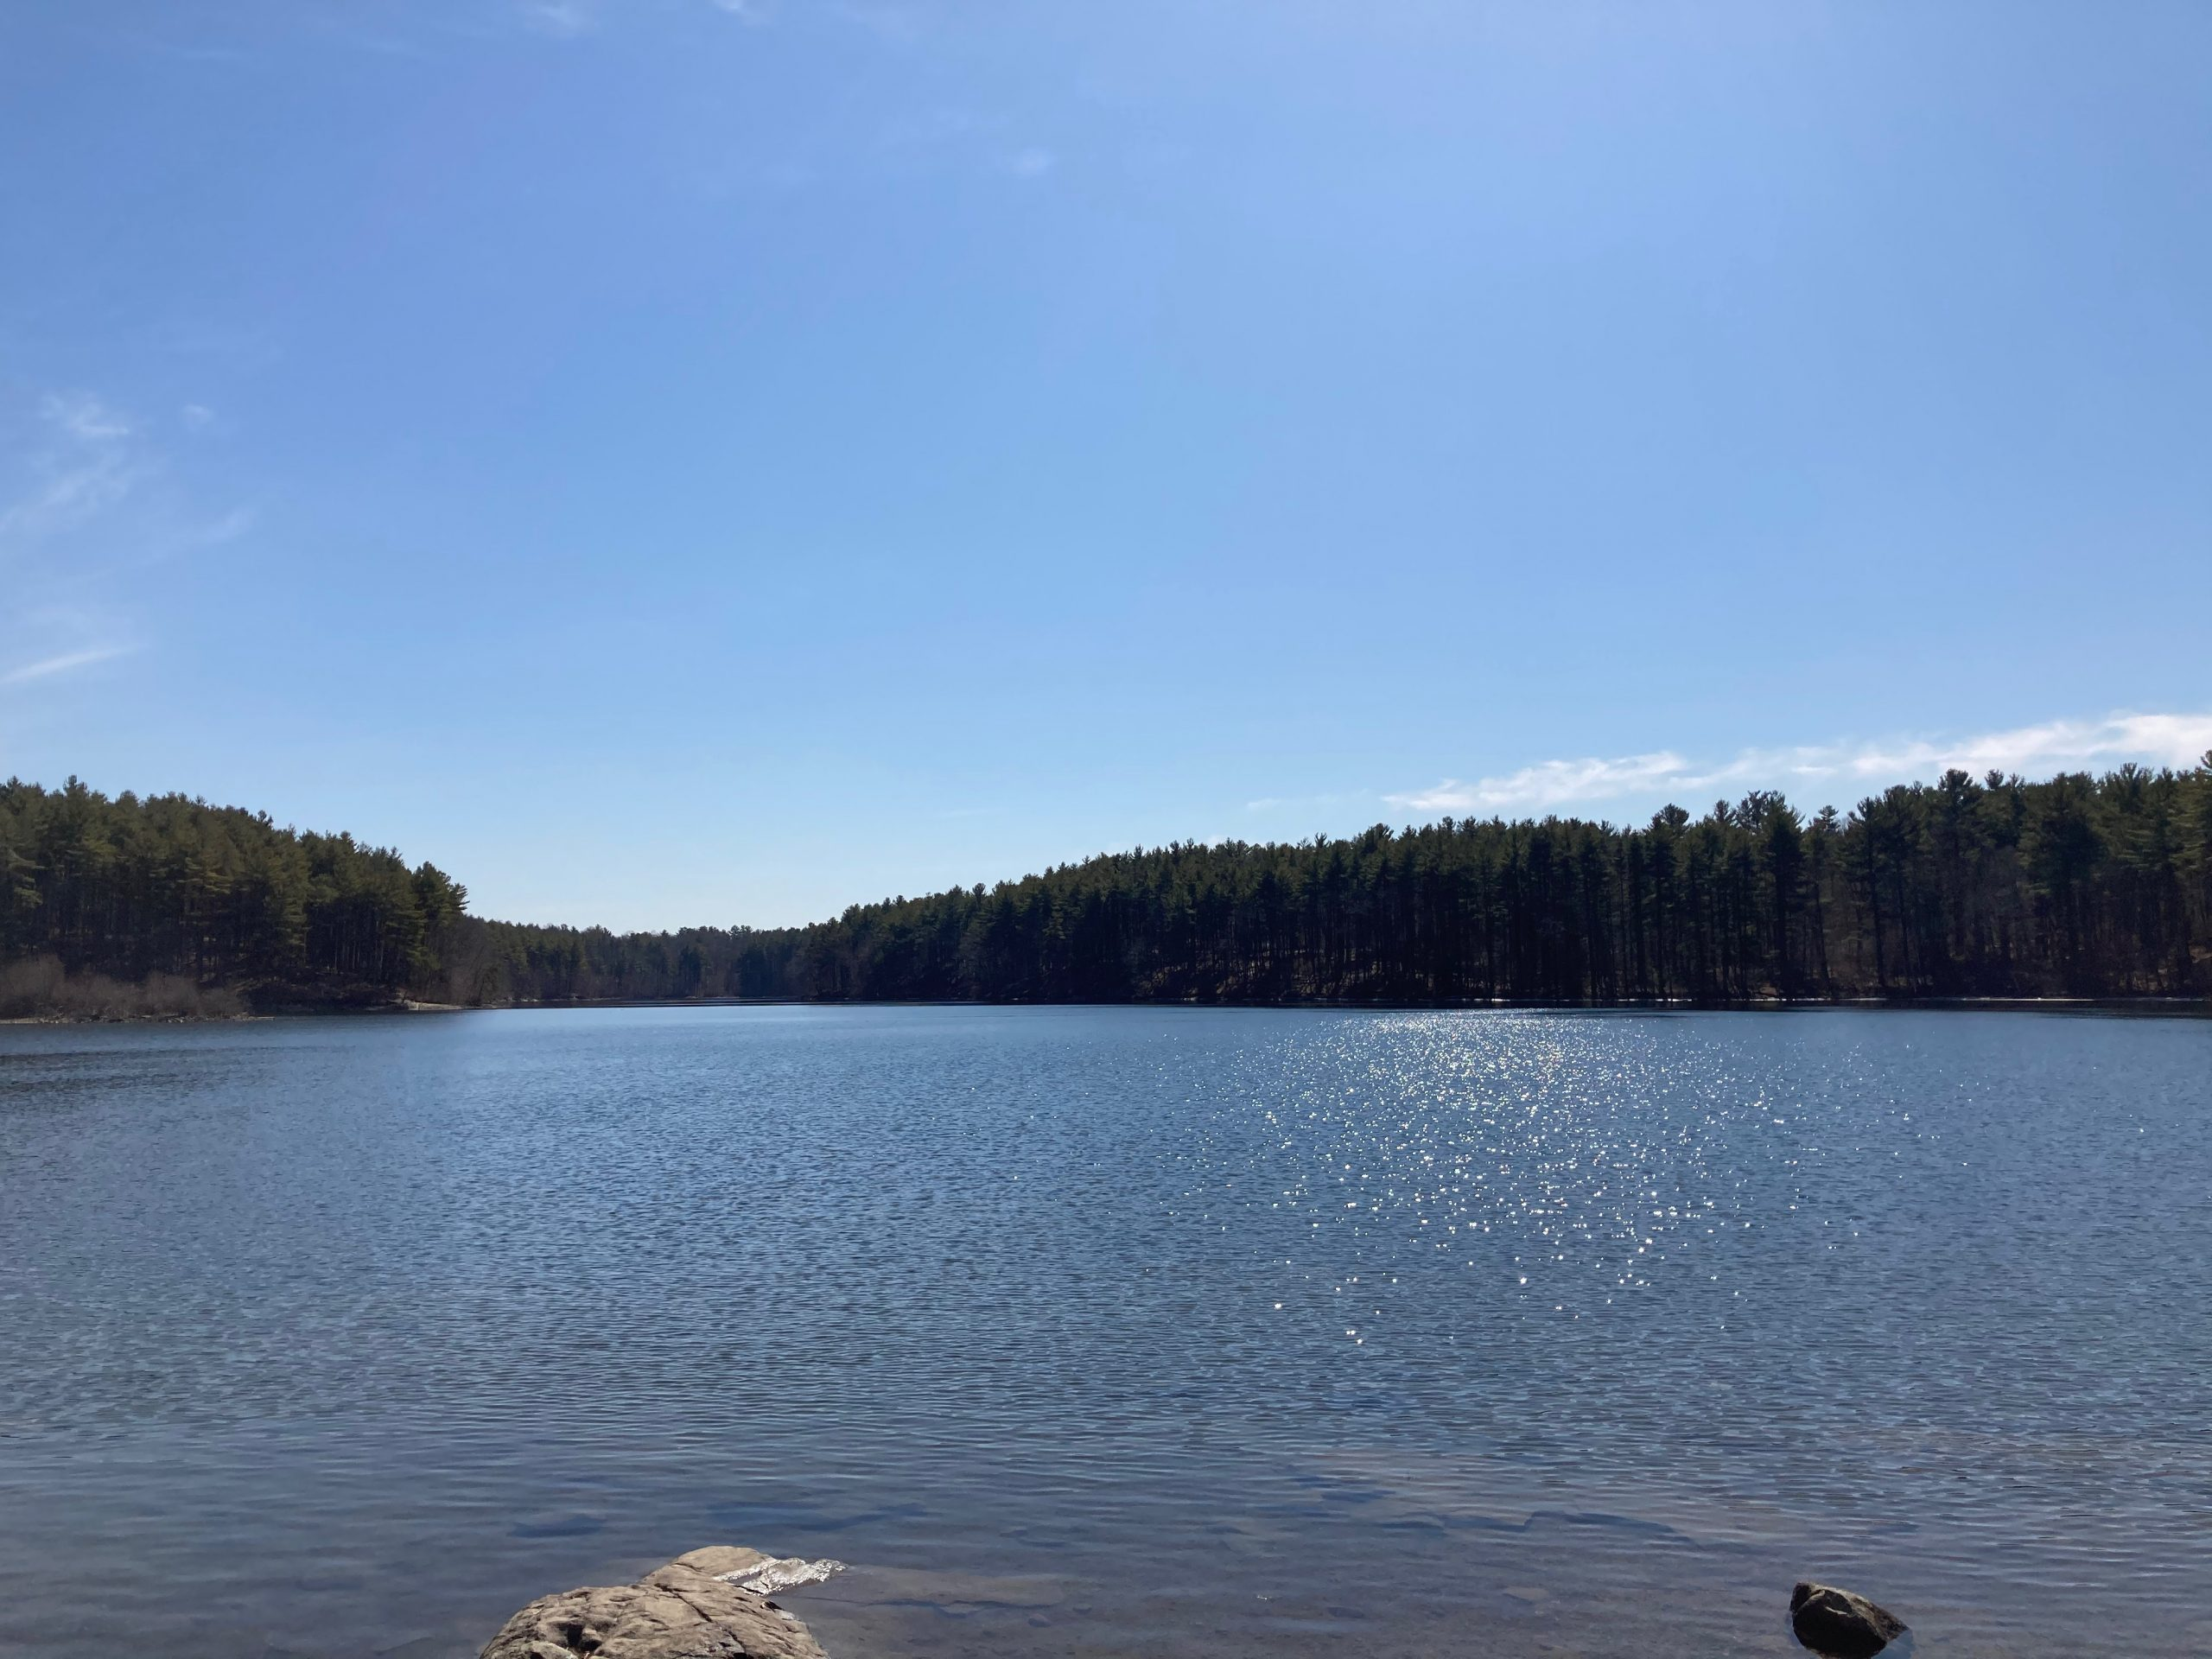 A calm blue lake and a cloudless blue sky. Pine trees cover the horizon.